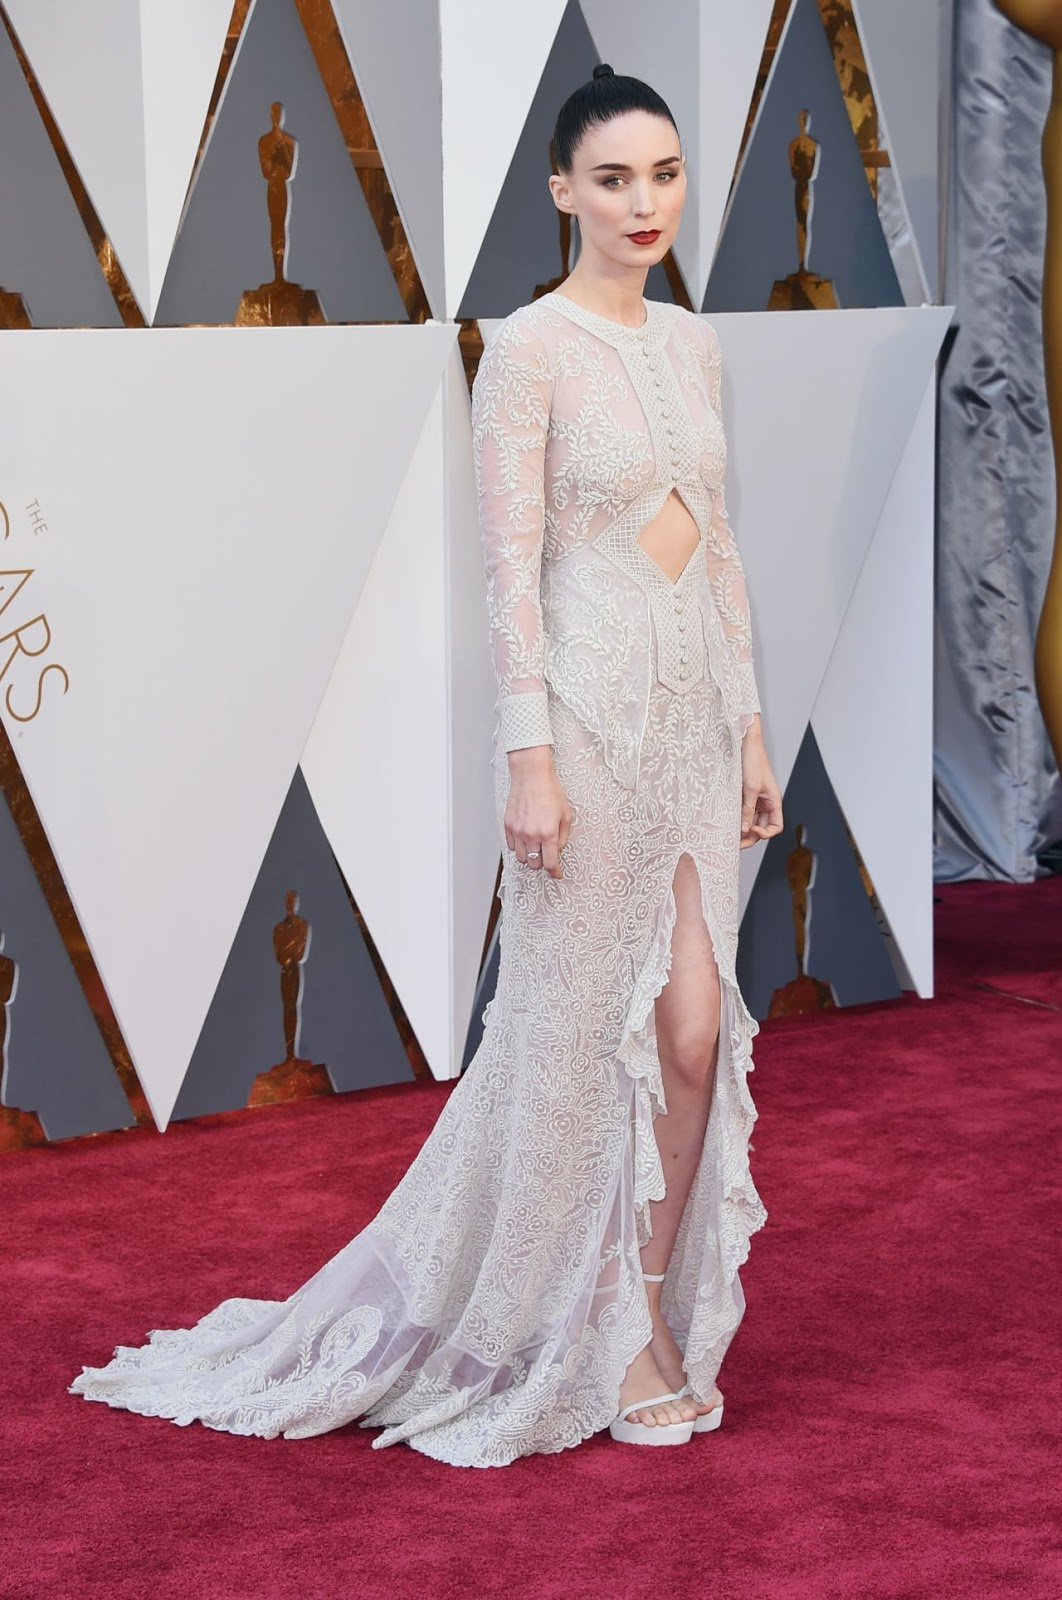 Rooney Mara wears white lace to the Oscars 2016